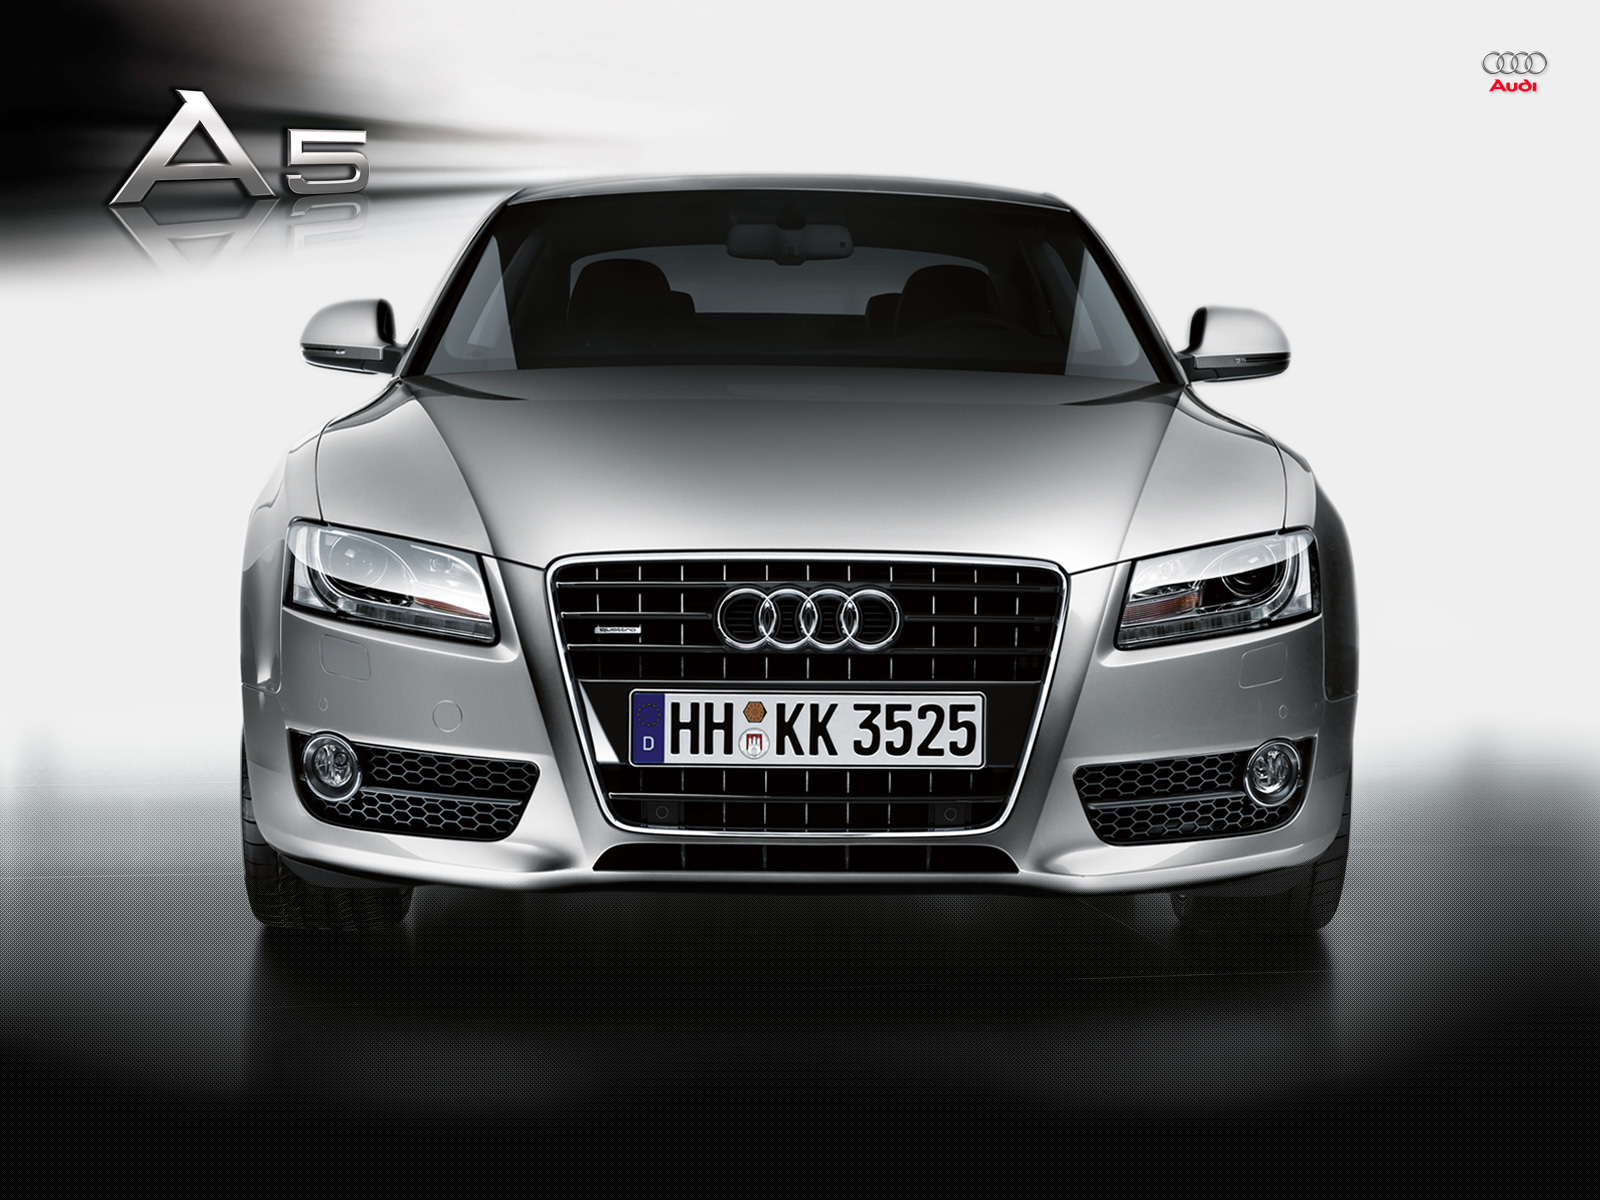 Audi Car Hd Wallpapers Nature Wallpaper